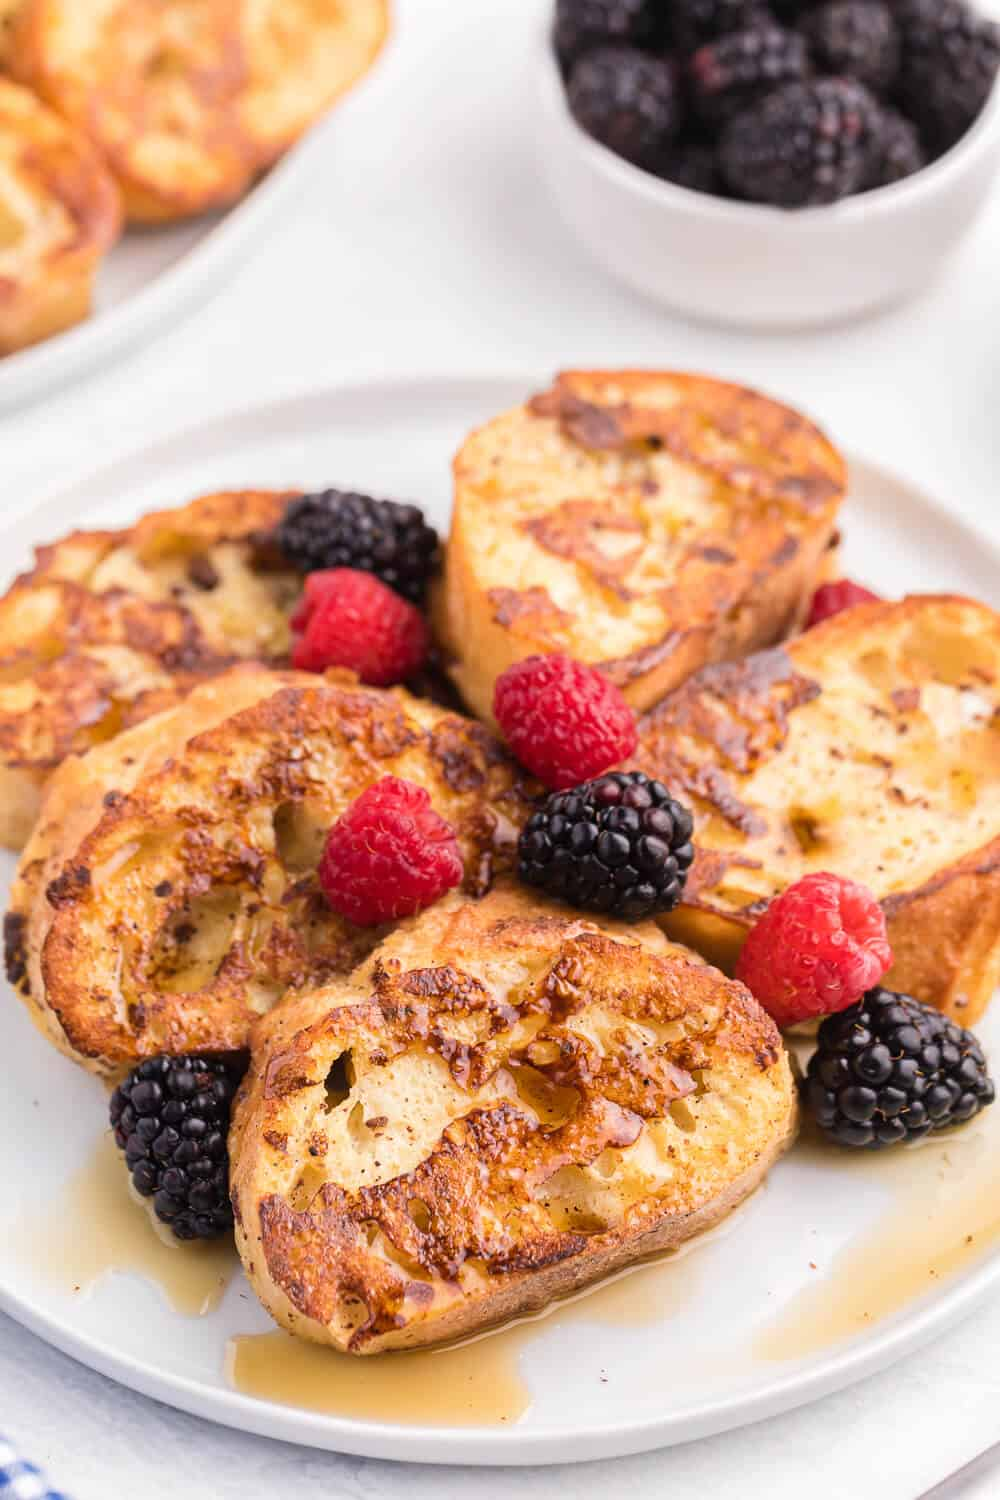 Baked French Toast - Make it the night before and bake it the next morning for breakfast! Healthy, delicious and sugar free!